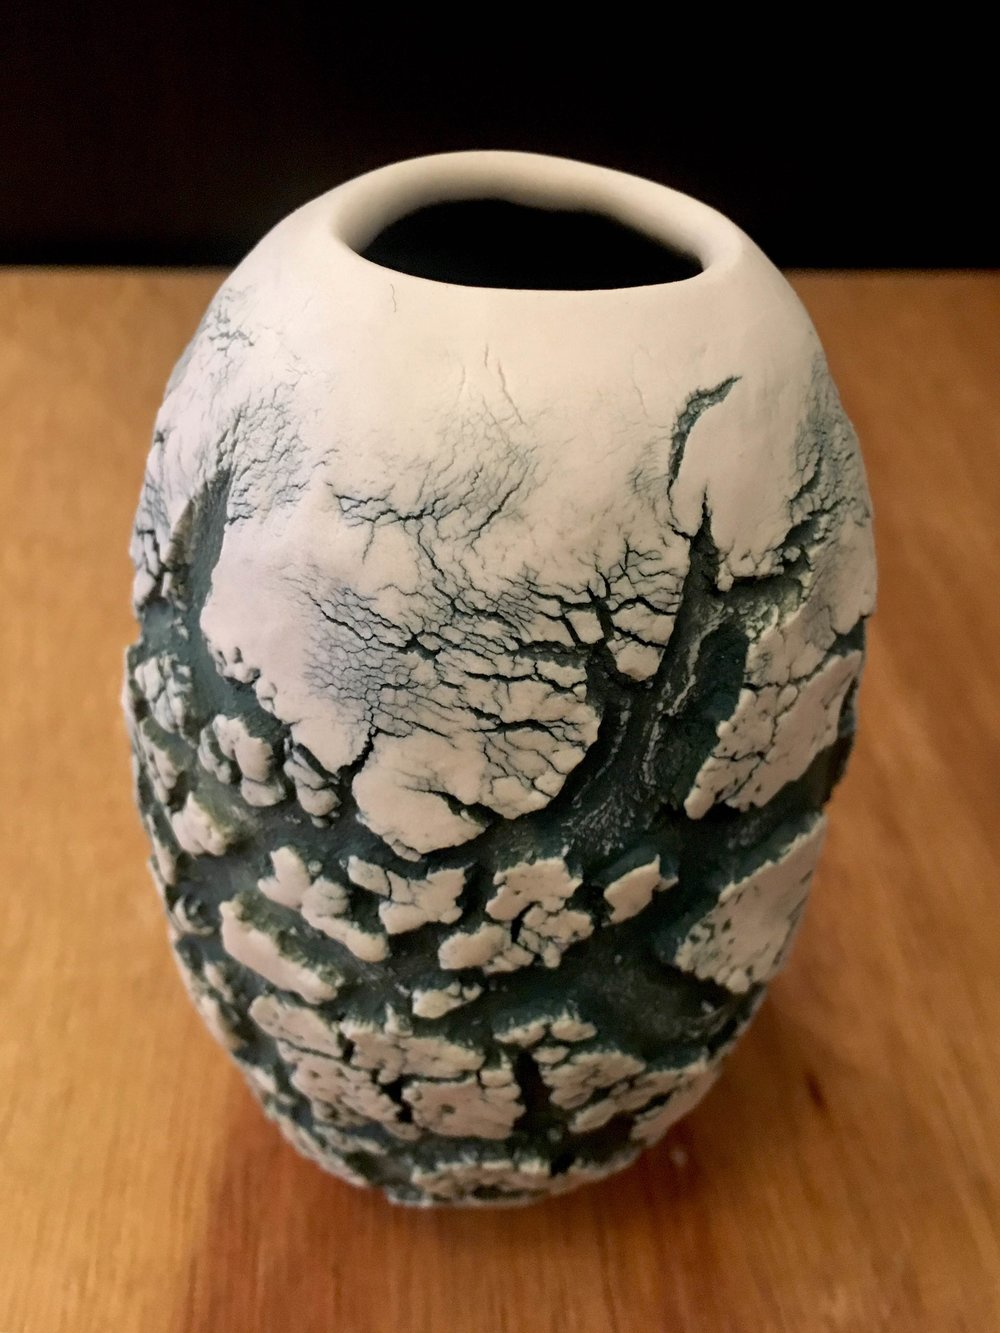 "Small hand-formed porcelain vase, 5"" x 3"" diameter, sold"